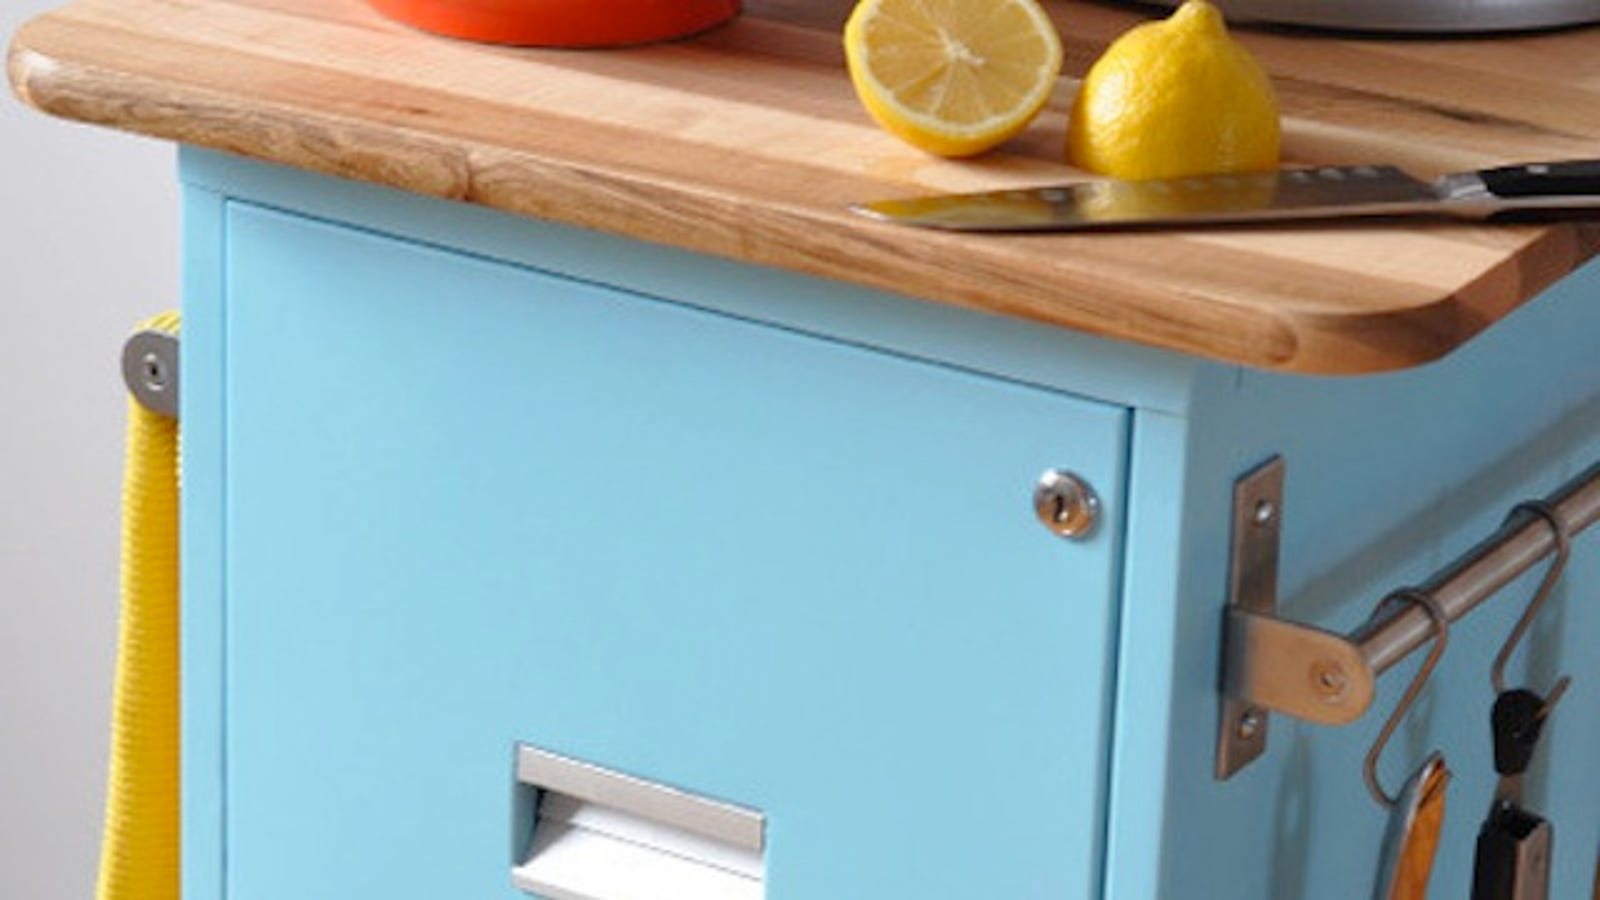 Repurpose A Filing Cabinet To Make A Rolling Kitchen Cart